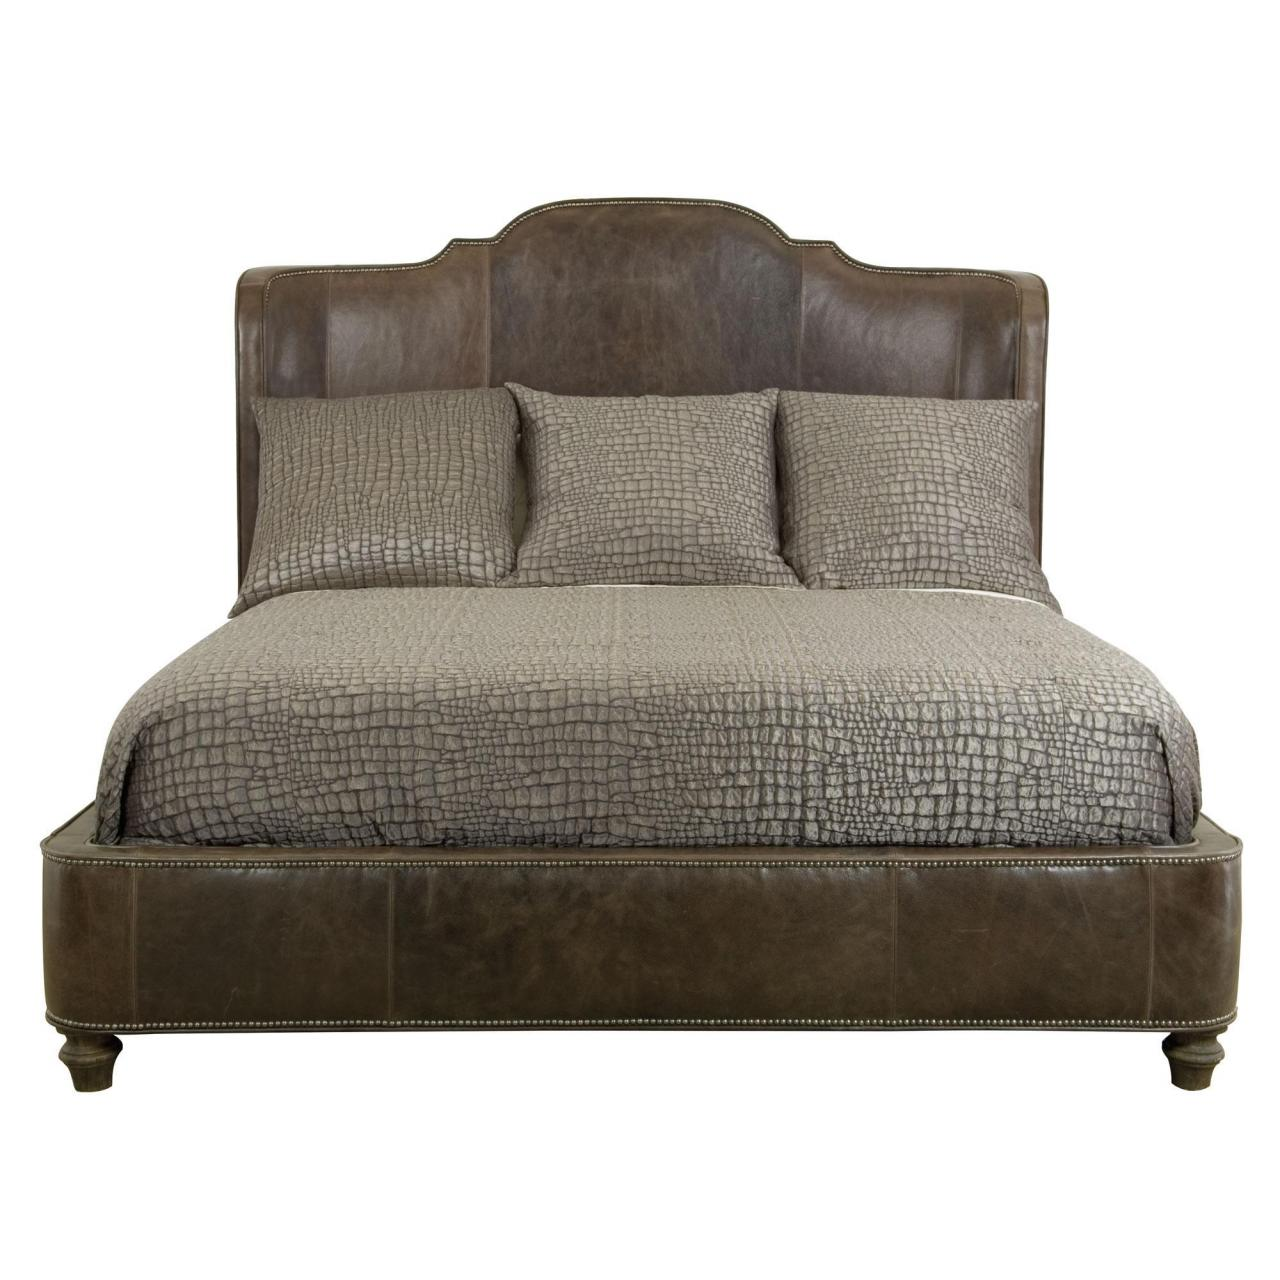 Wood And Upholstered Beds Quality Wood And Upholstered Beds For Sale